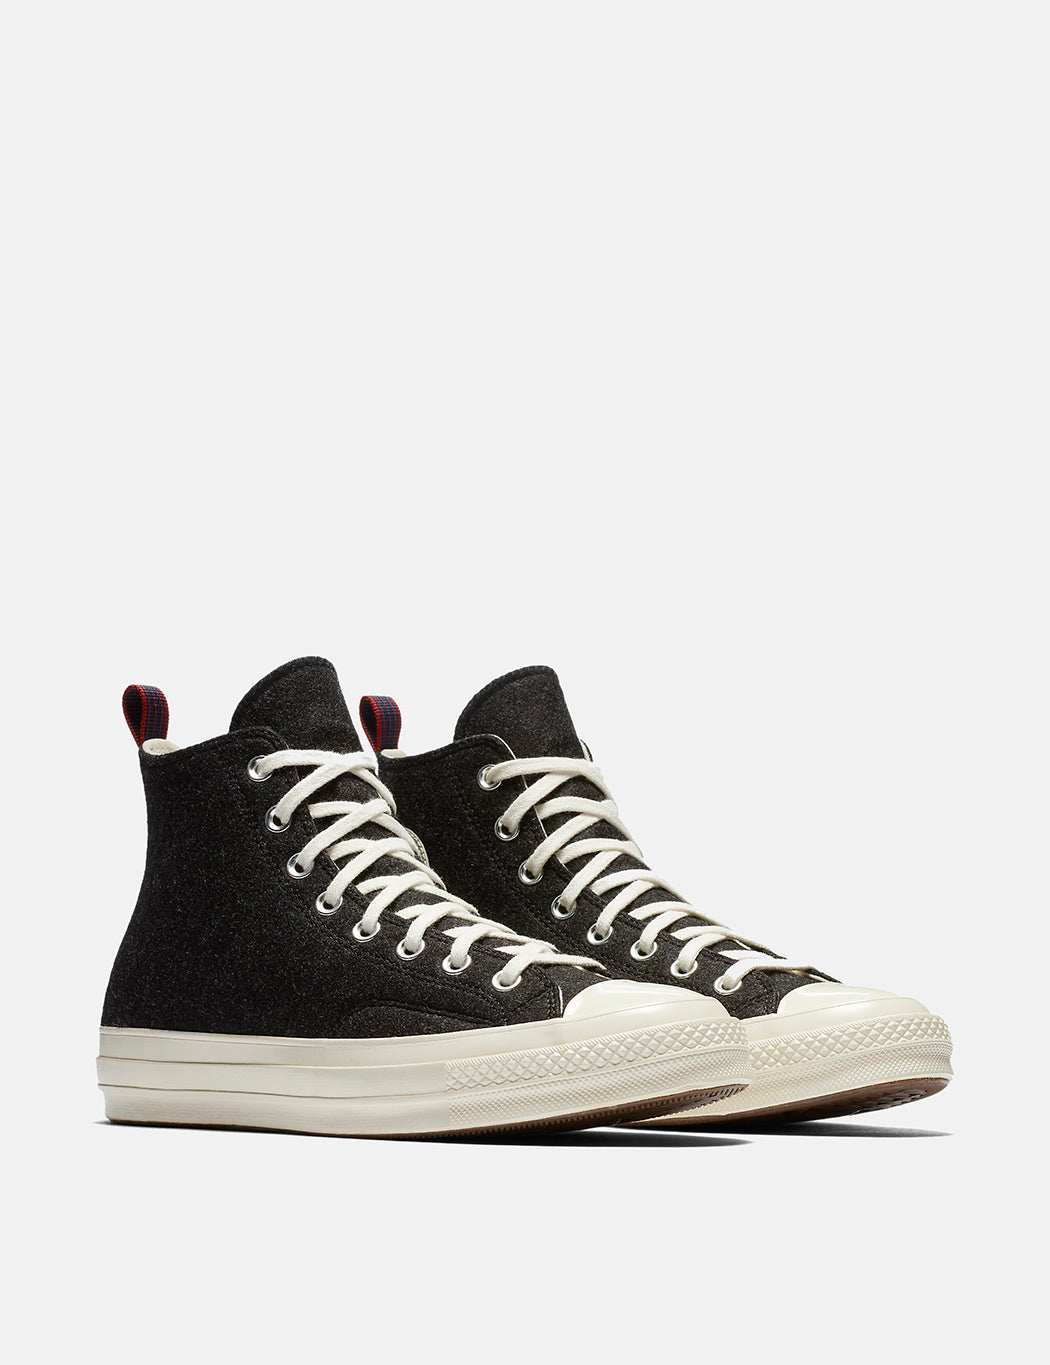 Converse And Taylor Sneakers Black Chuck White 70s gU6Yw